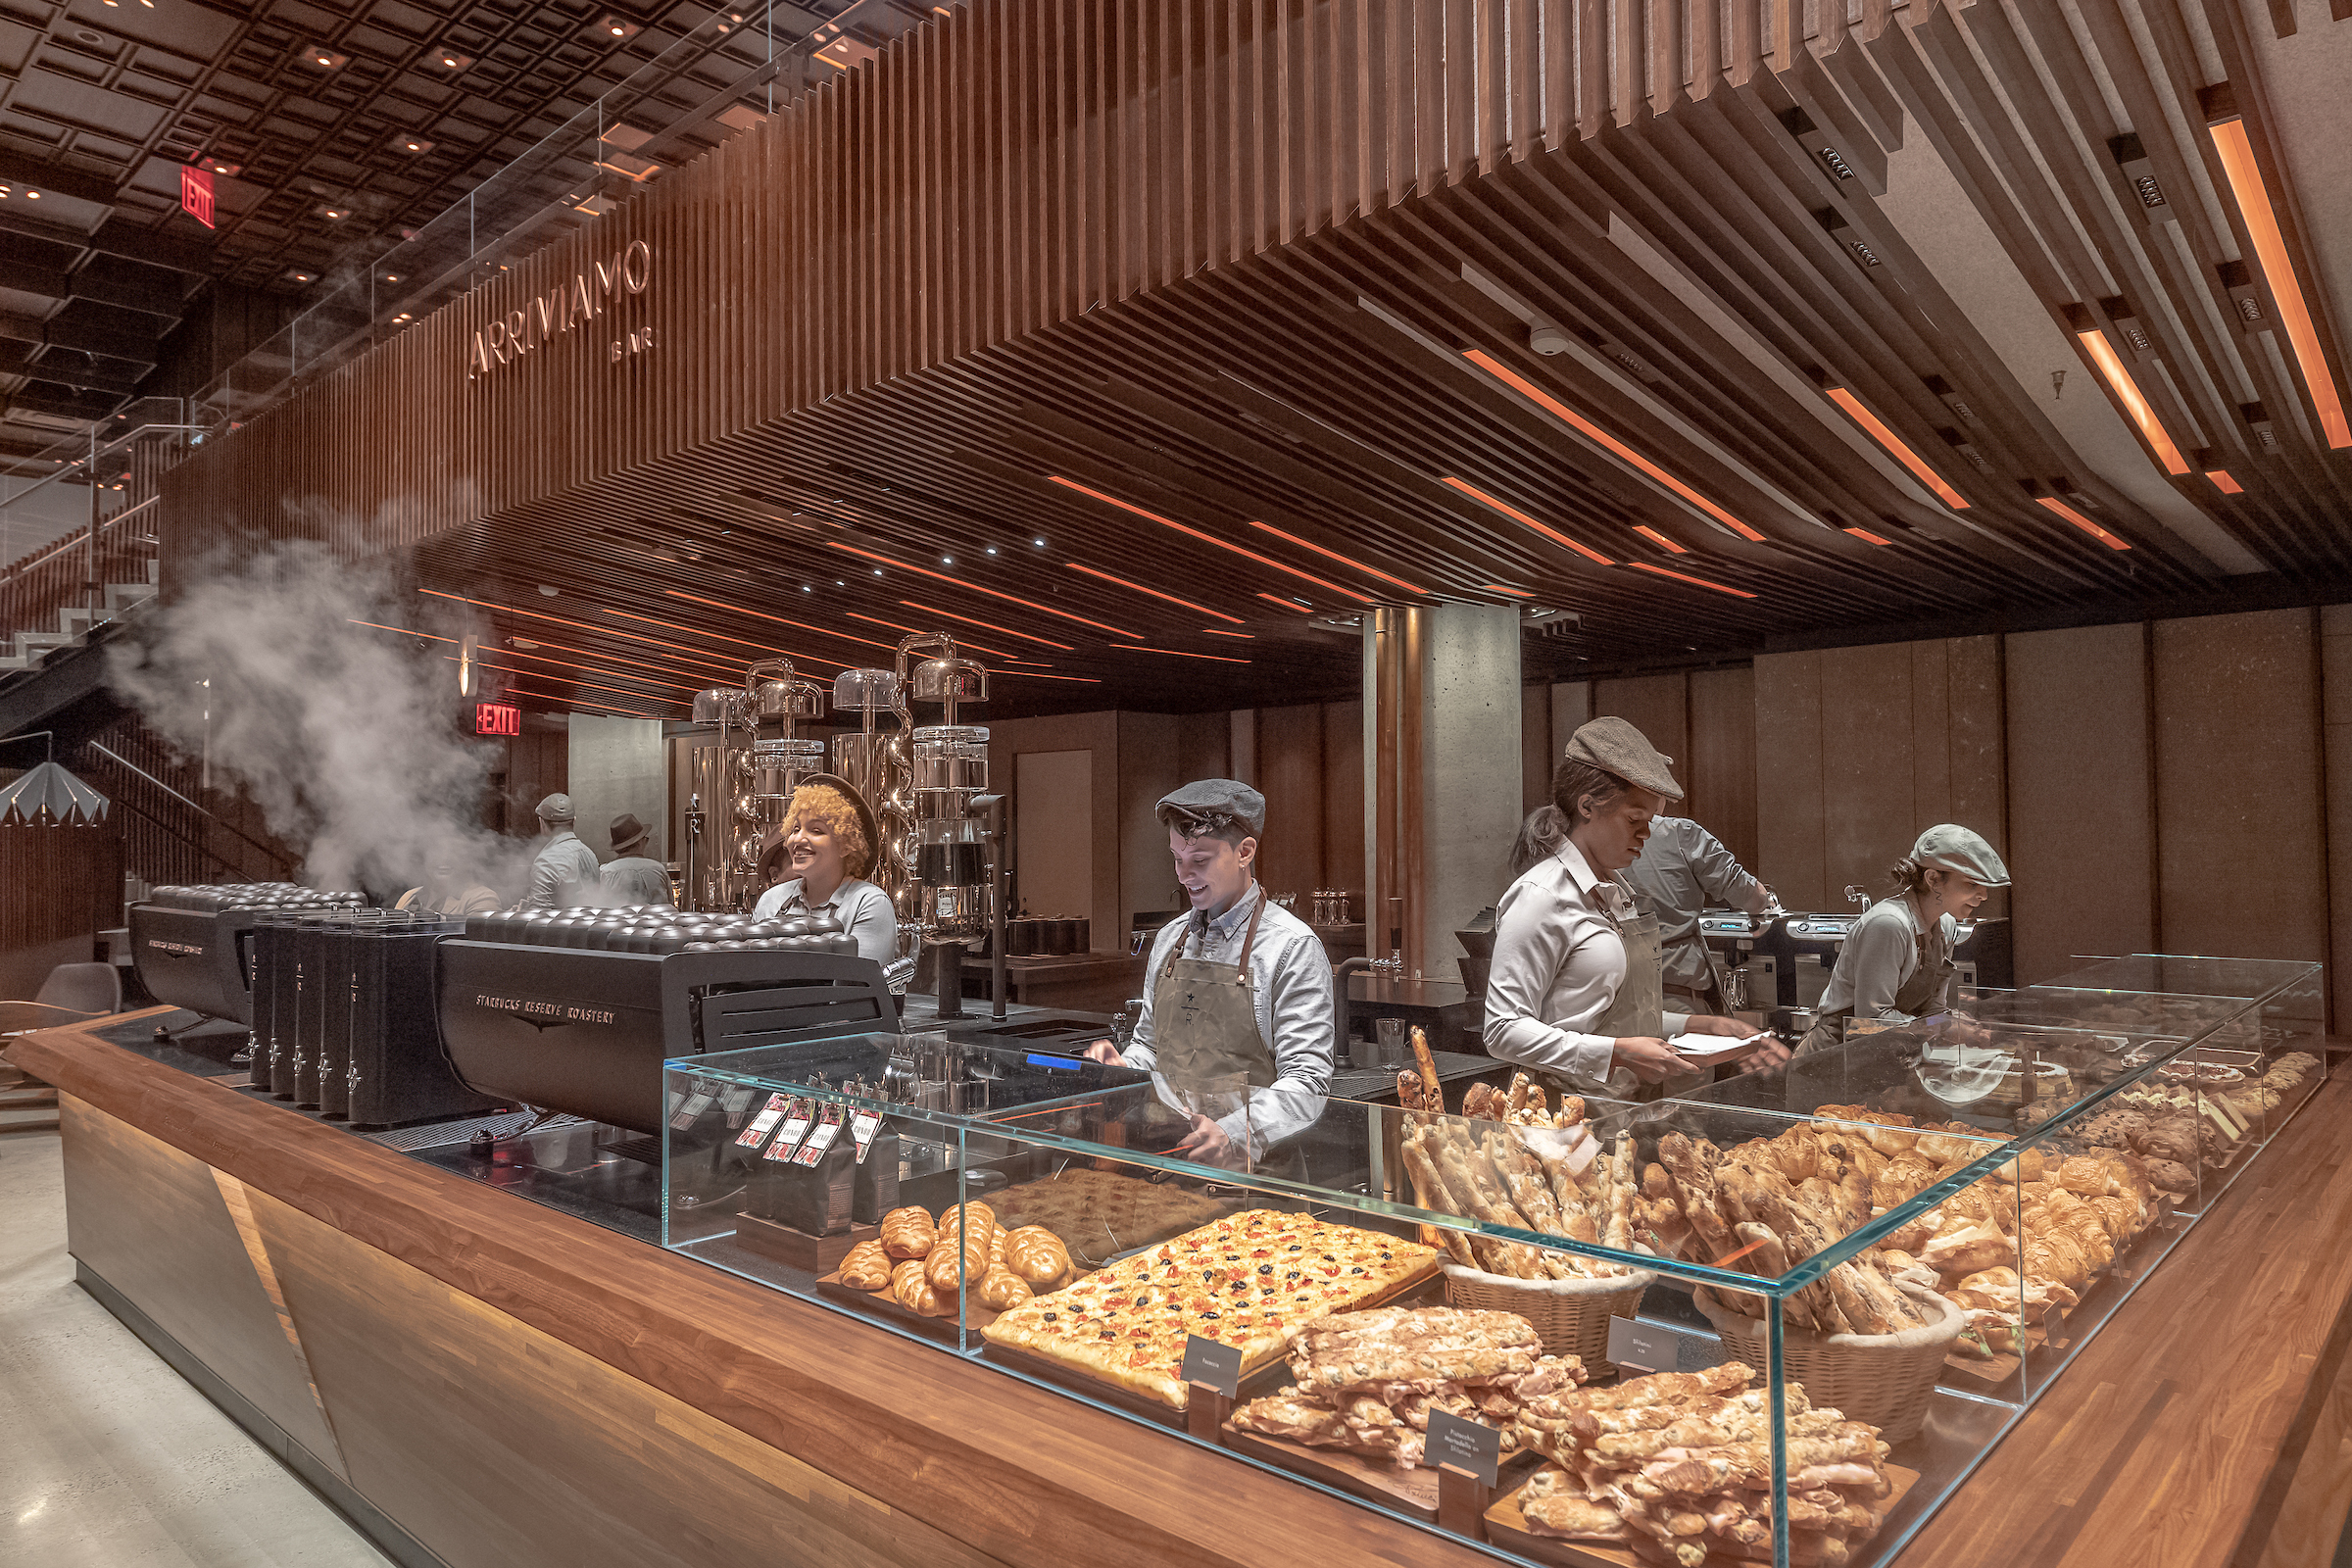 Starbucks Opens 23 000 Square Foot Roastery In Nyc